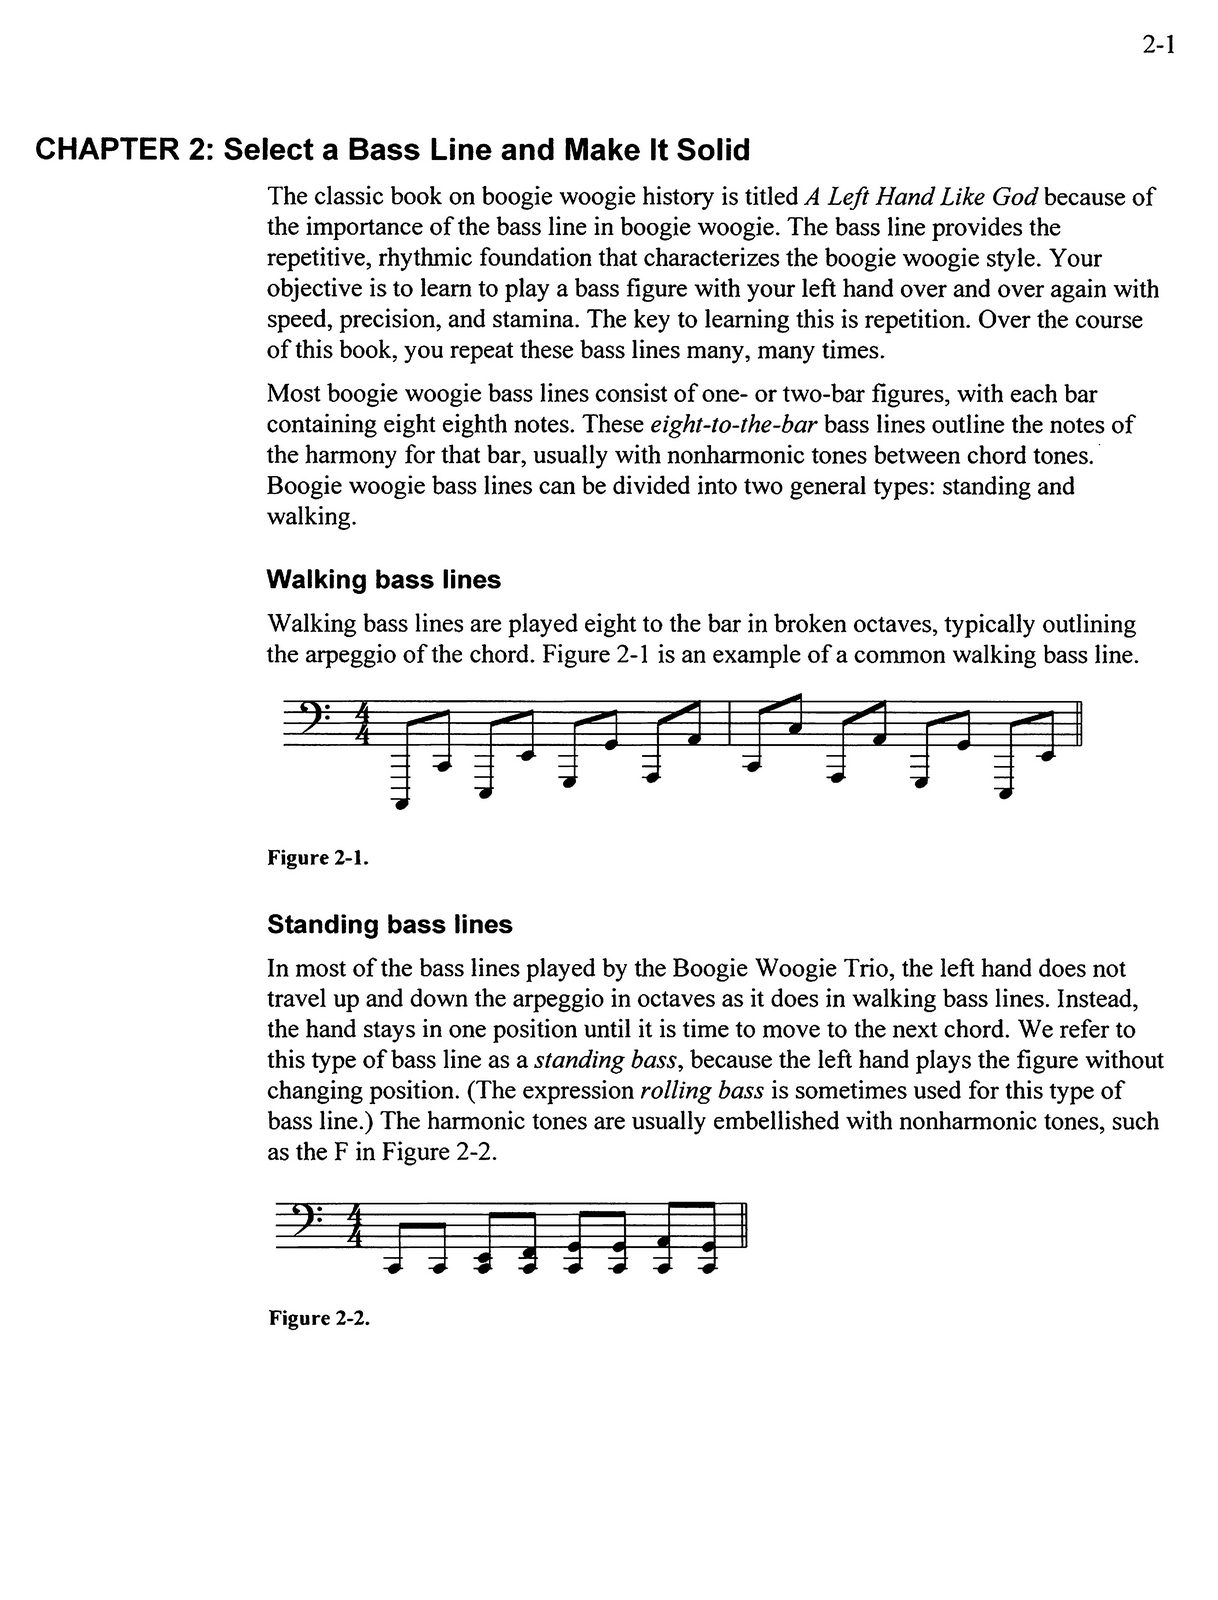 Download [PDF] Learn Boogie Woogie Piano Free Online | New ...